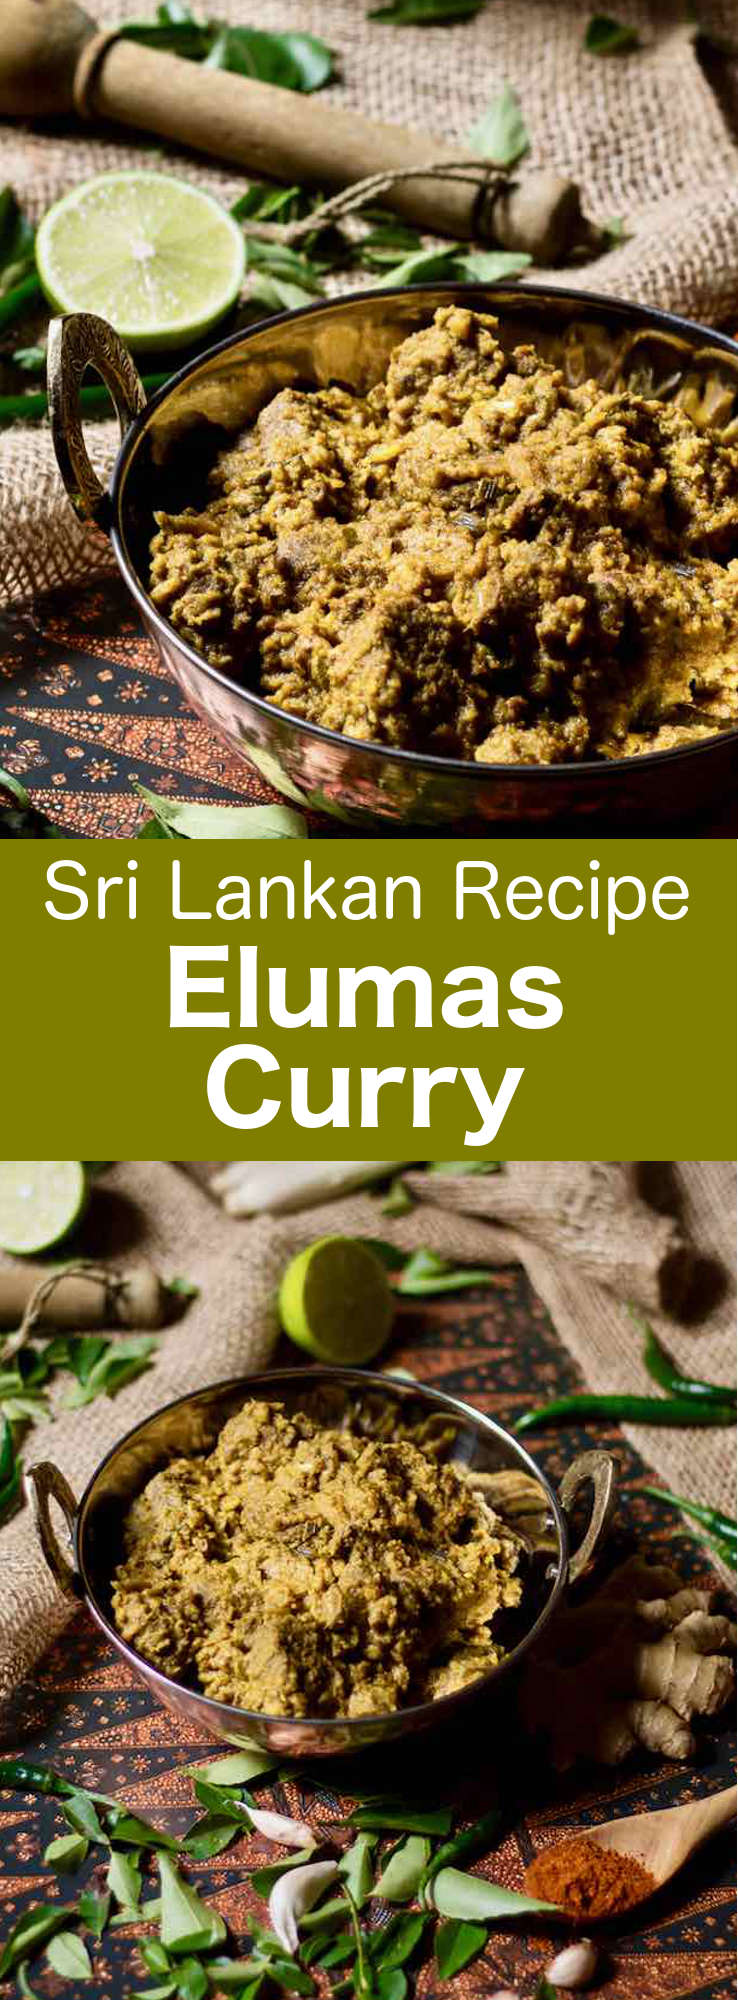 Elumas curry is a popular Sri Lankan mutton curry with complex and captivating flavors, which is prepared with coconut milk and a combination of spices and aromatics. #SriLanka #SriLankanCuisine #SriLankanCurry #SriLankanRecipe #WorldCuisine #196flavors